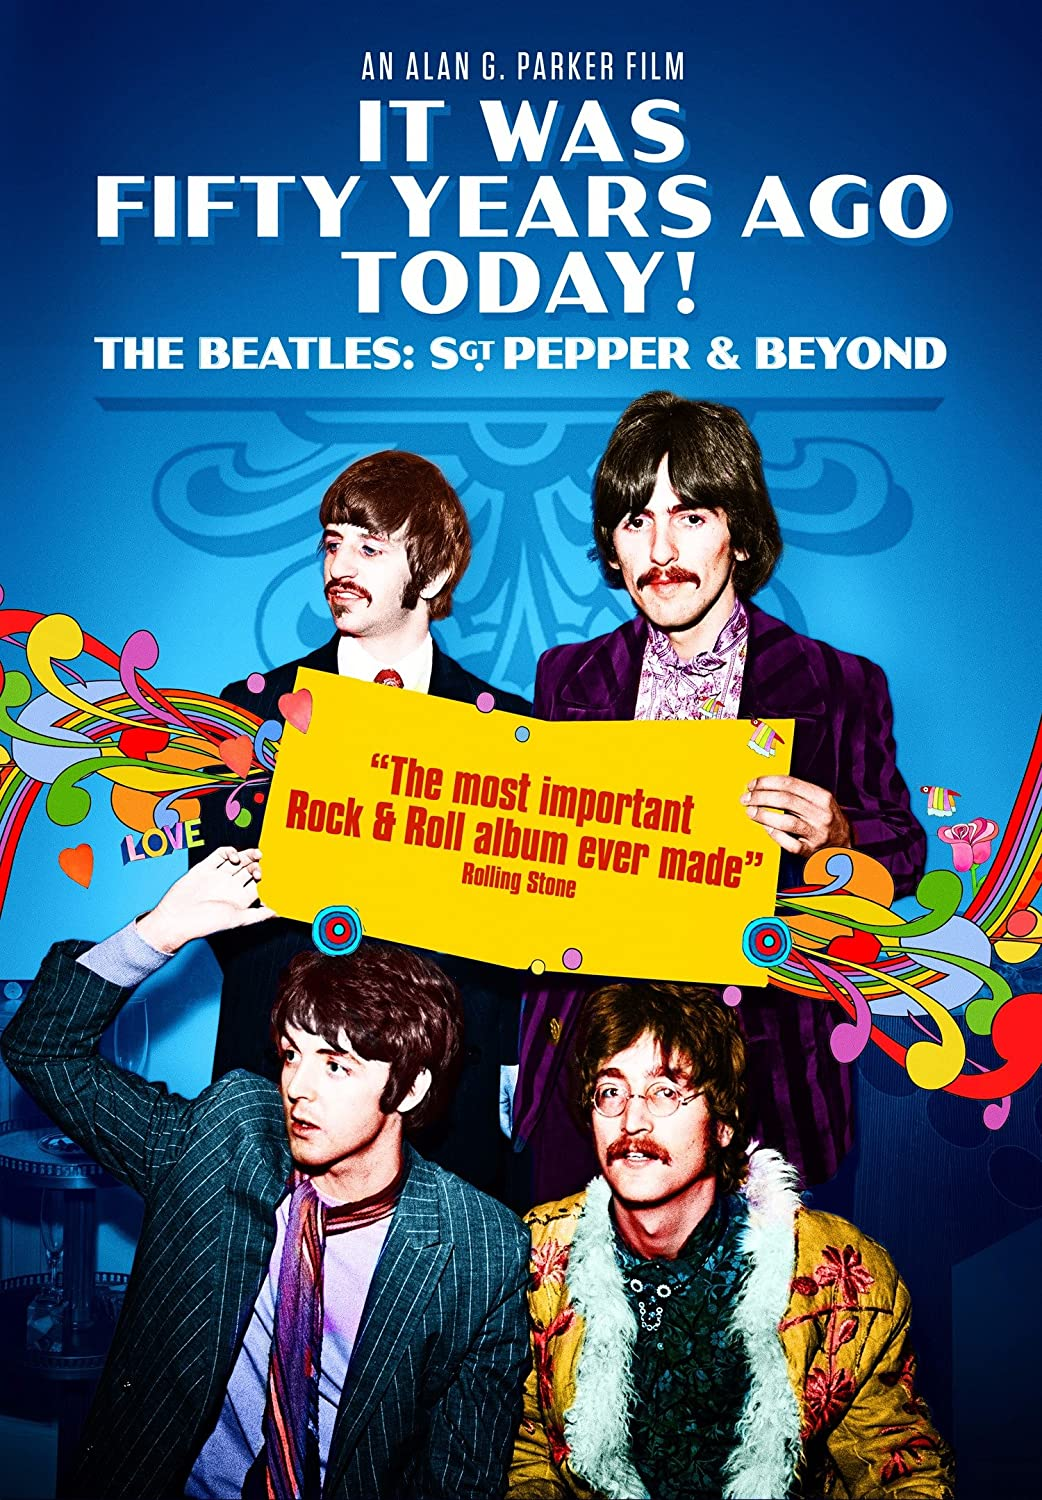 It Was Fifty Years Ago Today! The Beatles: Sgt Pepper & Beyond